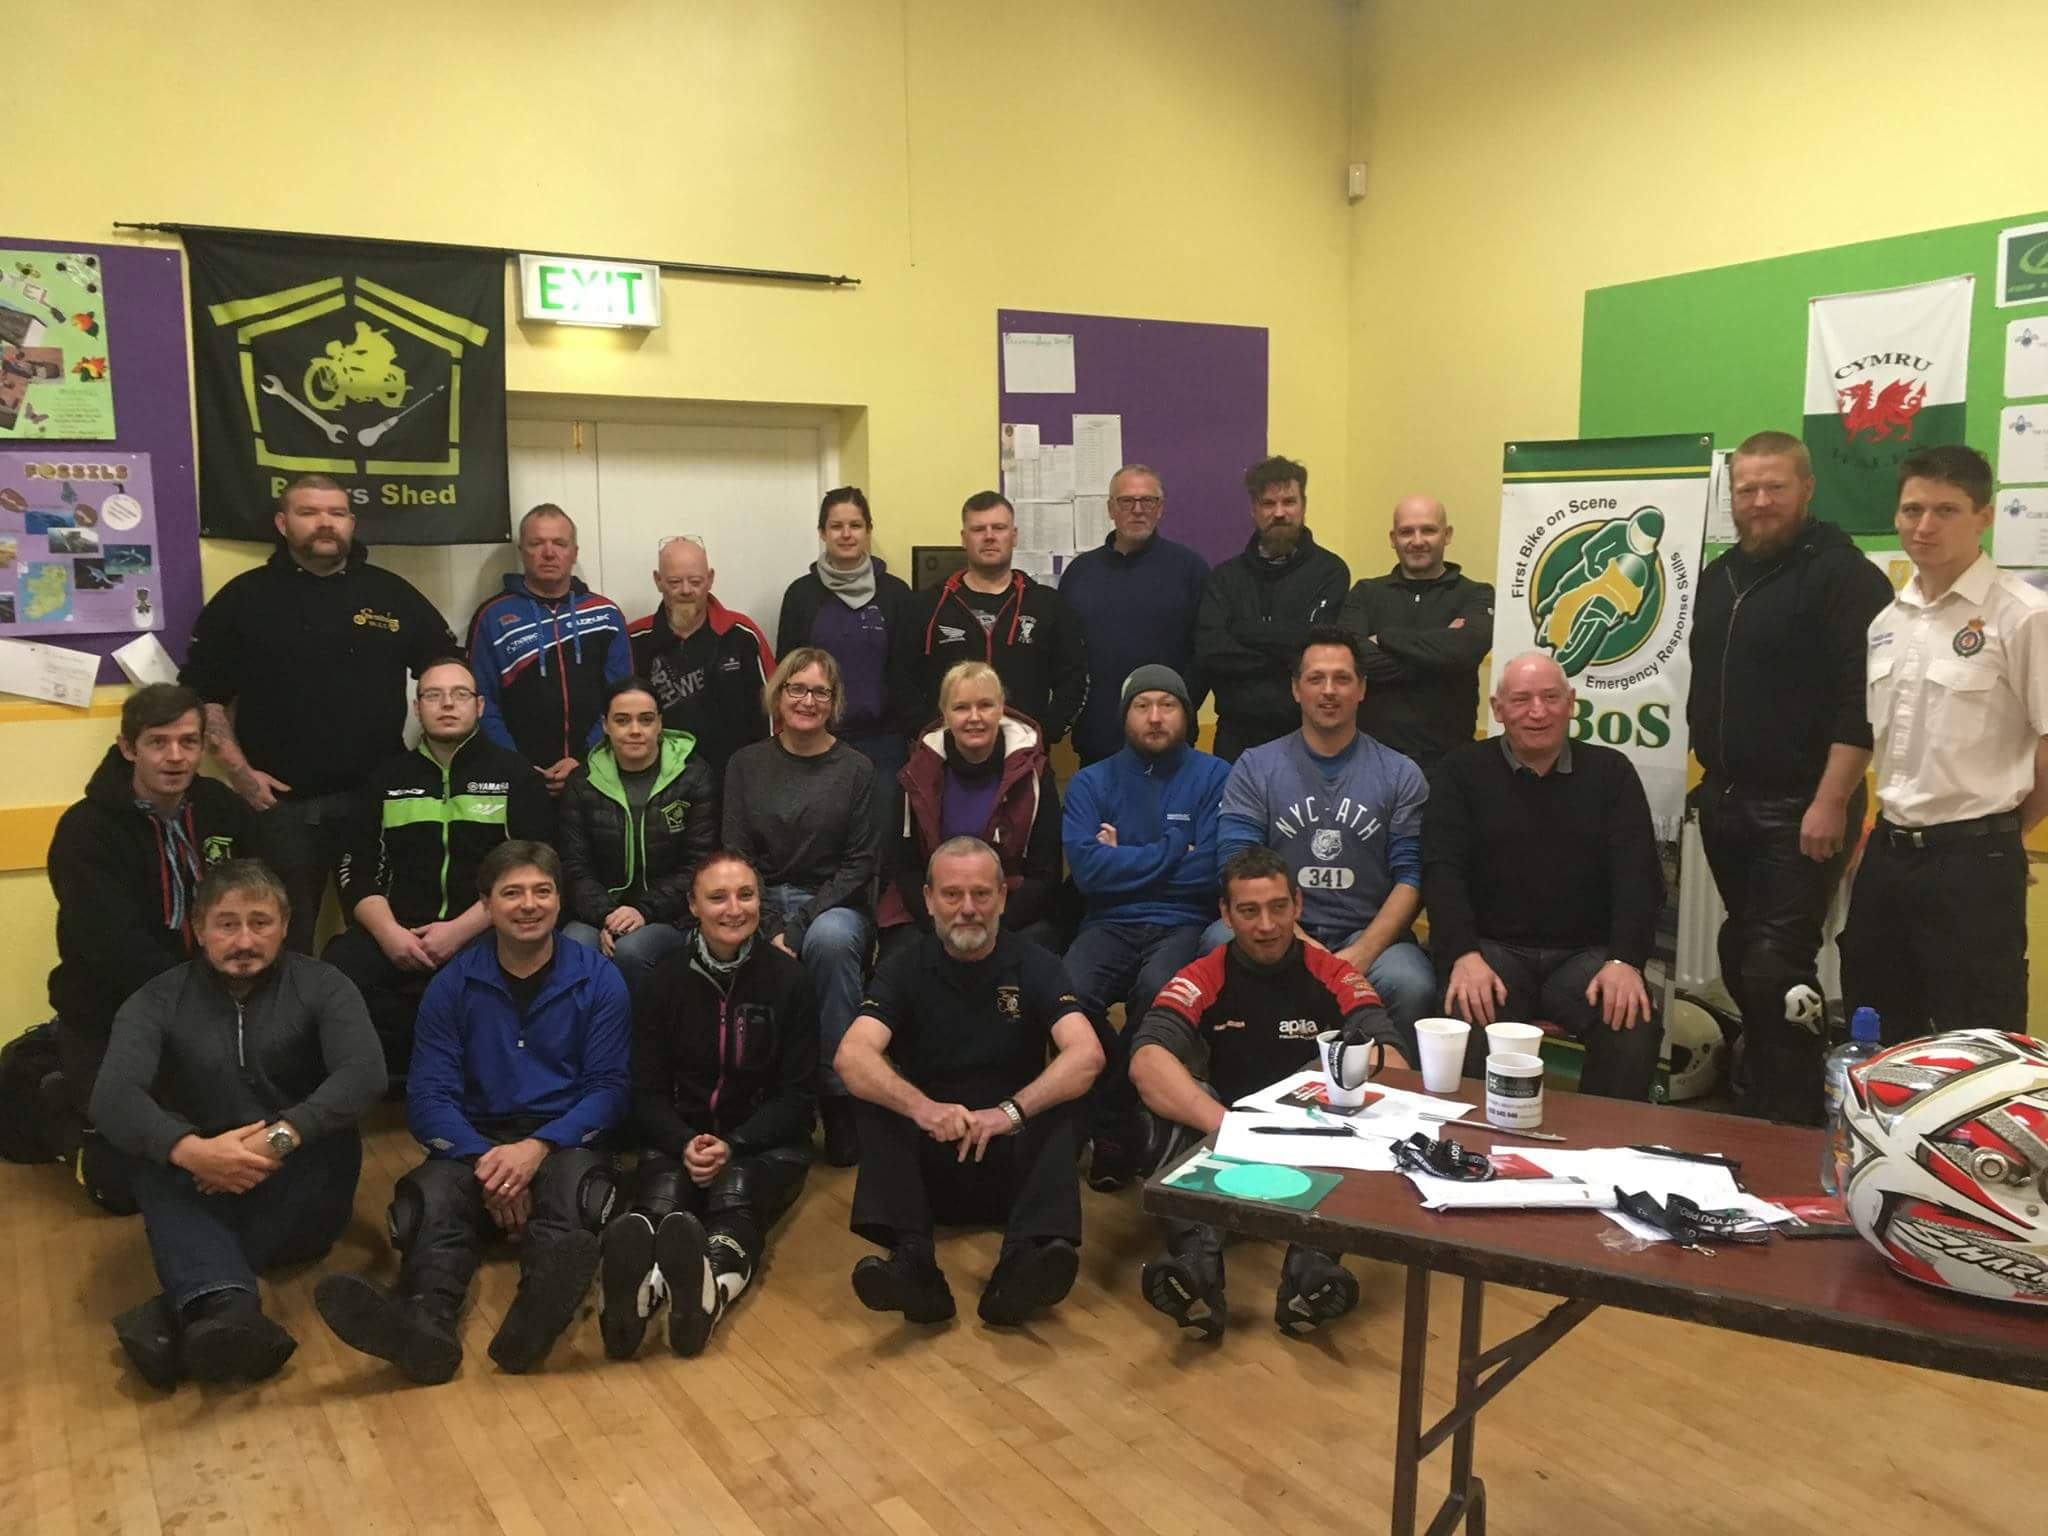 Local Bikers Shed Initiative Aims To Save Lives Laois Today